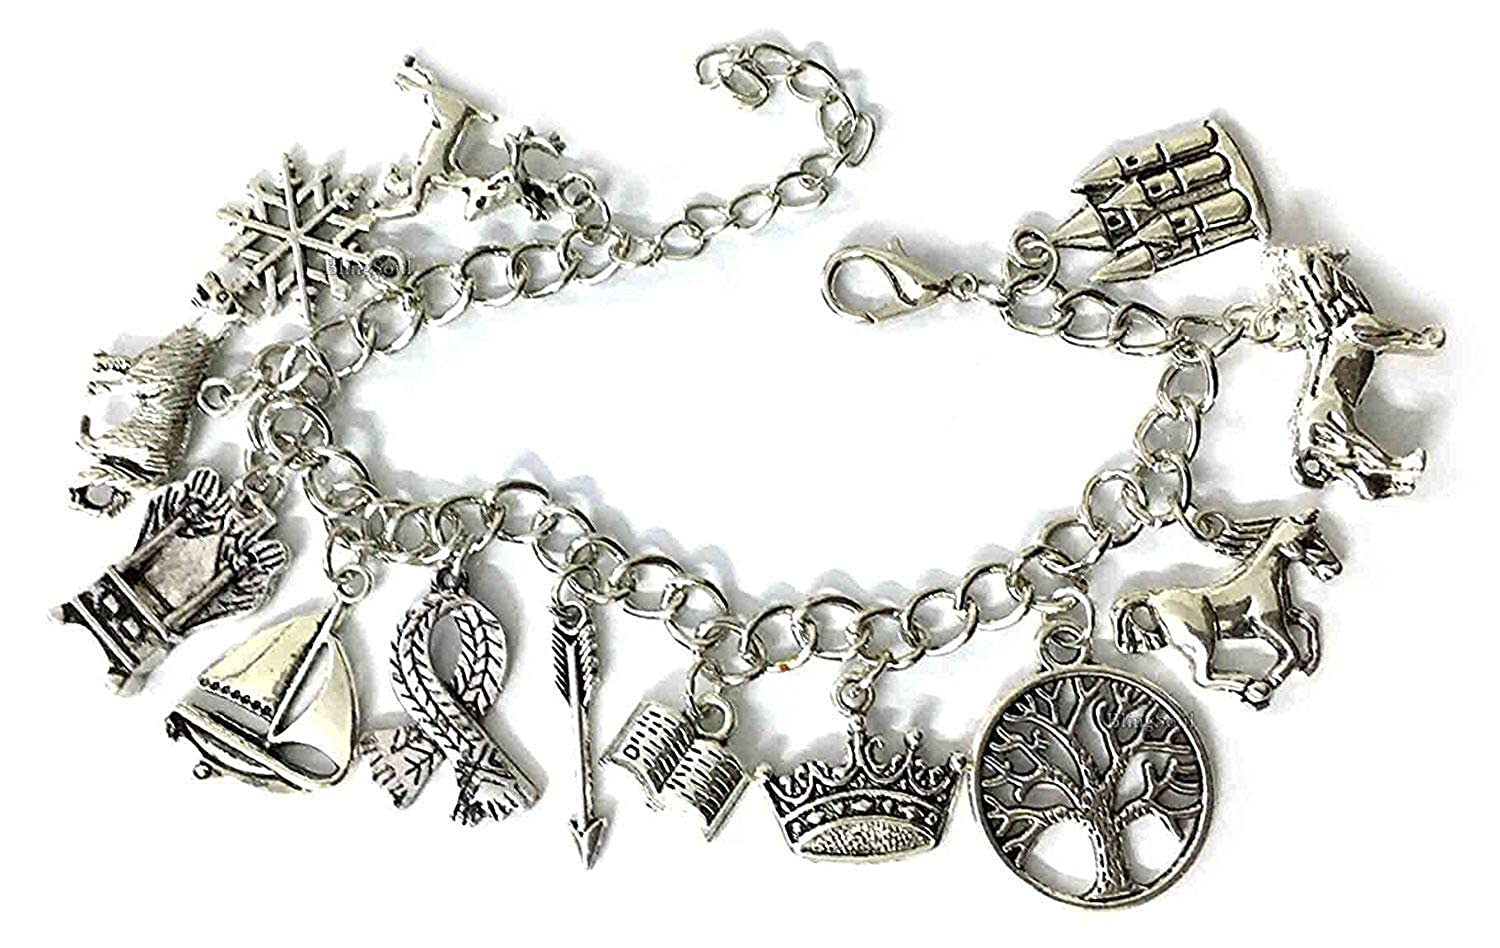 The Chronicles of Narnia Themed Charms Charm BRACELET